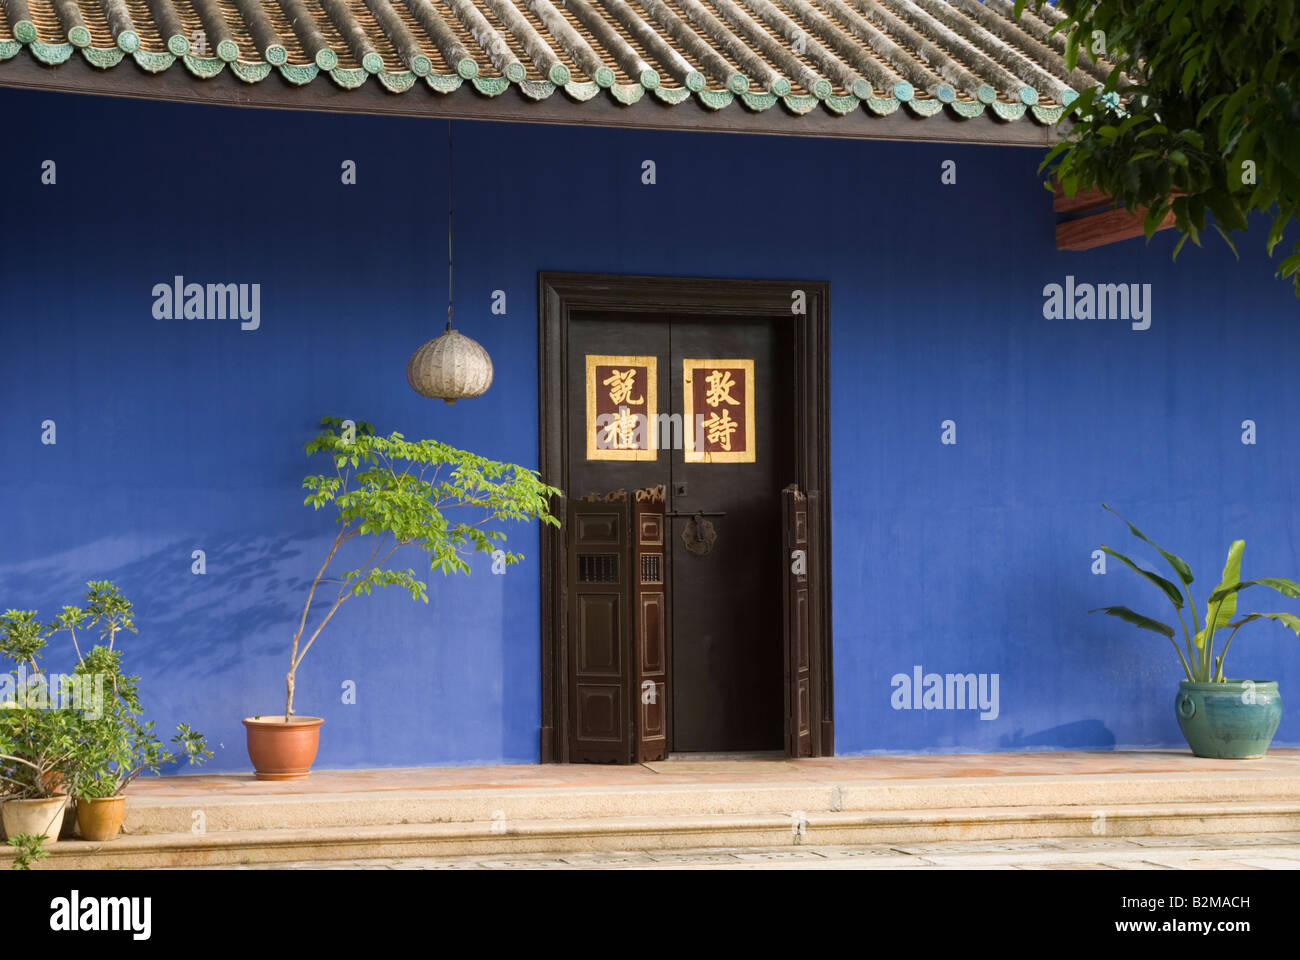 Cheong Fatt Tze Mansion in Georgetown, Penang, Malaysia - Stock Image